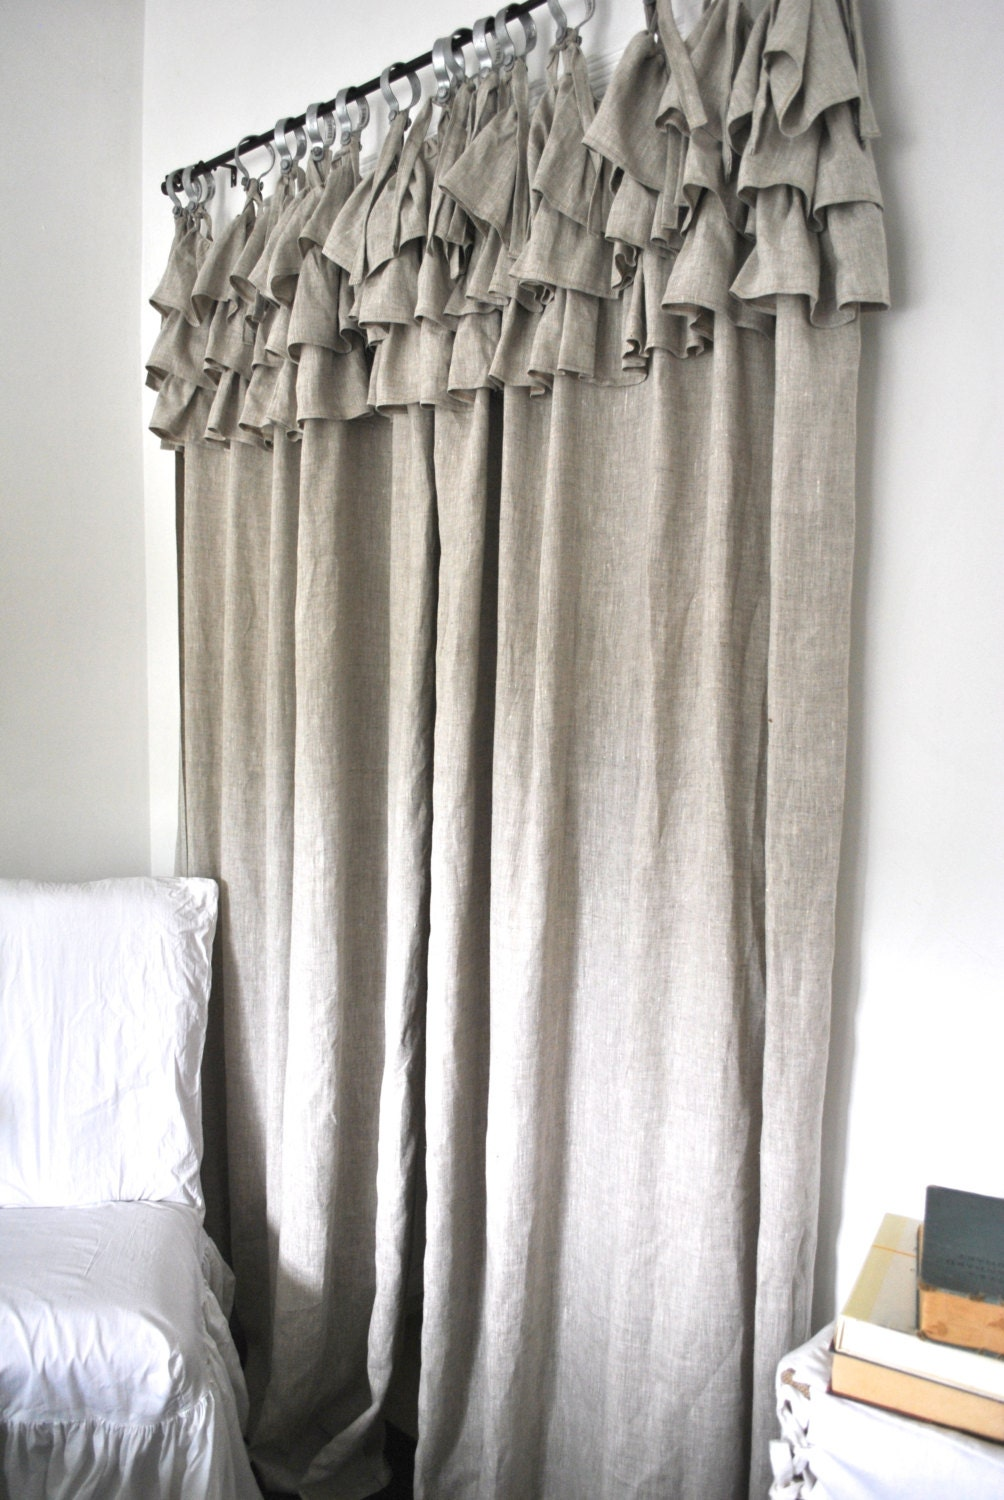 ruffle curtain ruffle top linen curtain verdunklungsgardinen fr eine moderne und schne. Black Bedroom Furniture Sets. Home Design Ideas